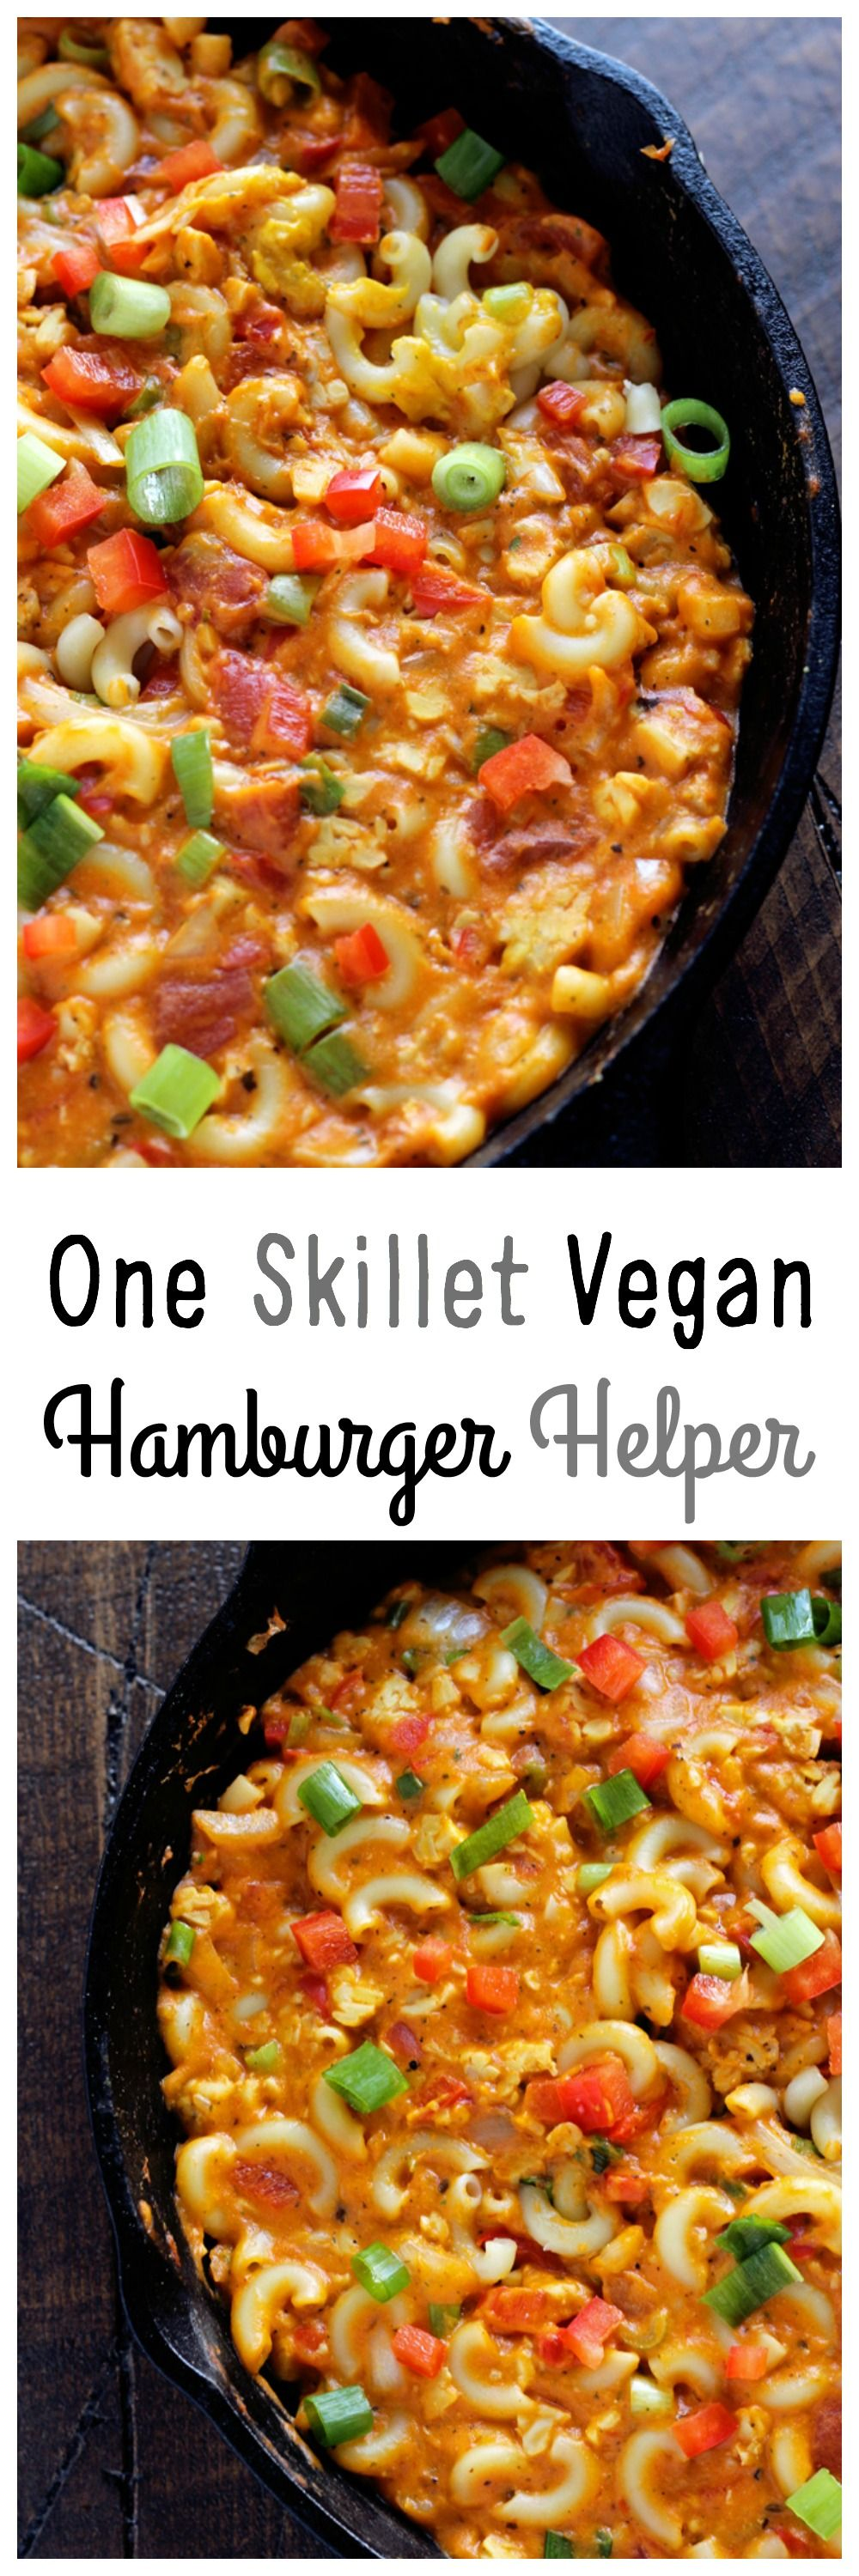 One Skillet Vegan Hamburger Helper | NeuroticMommy